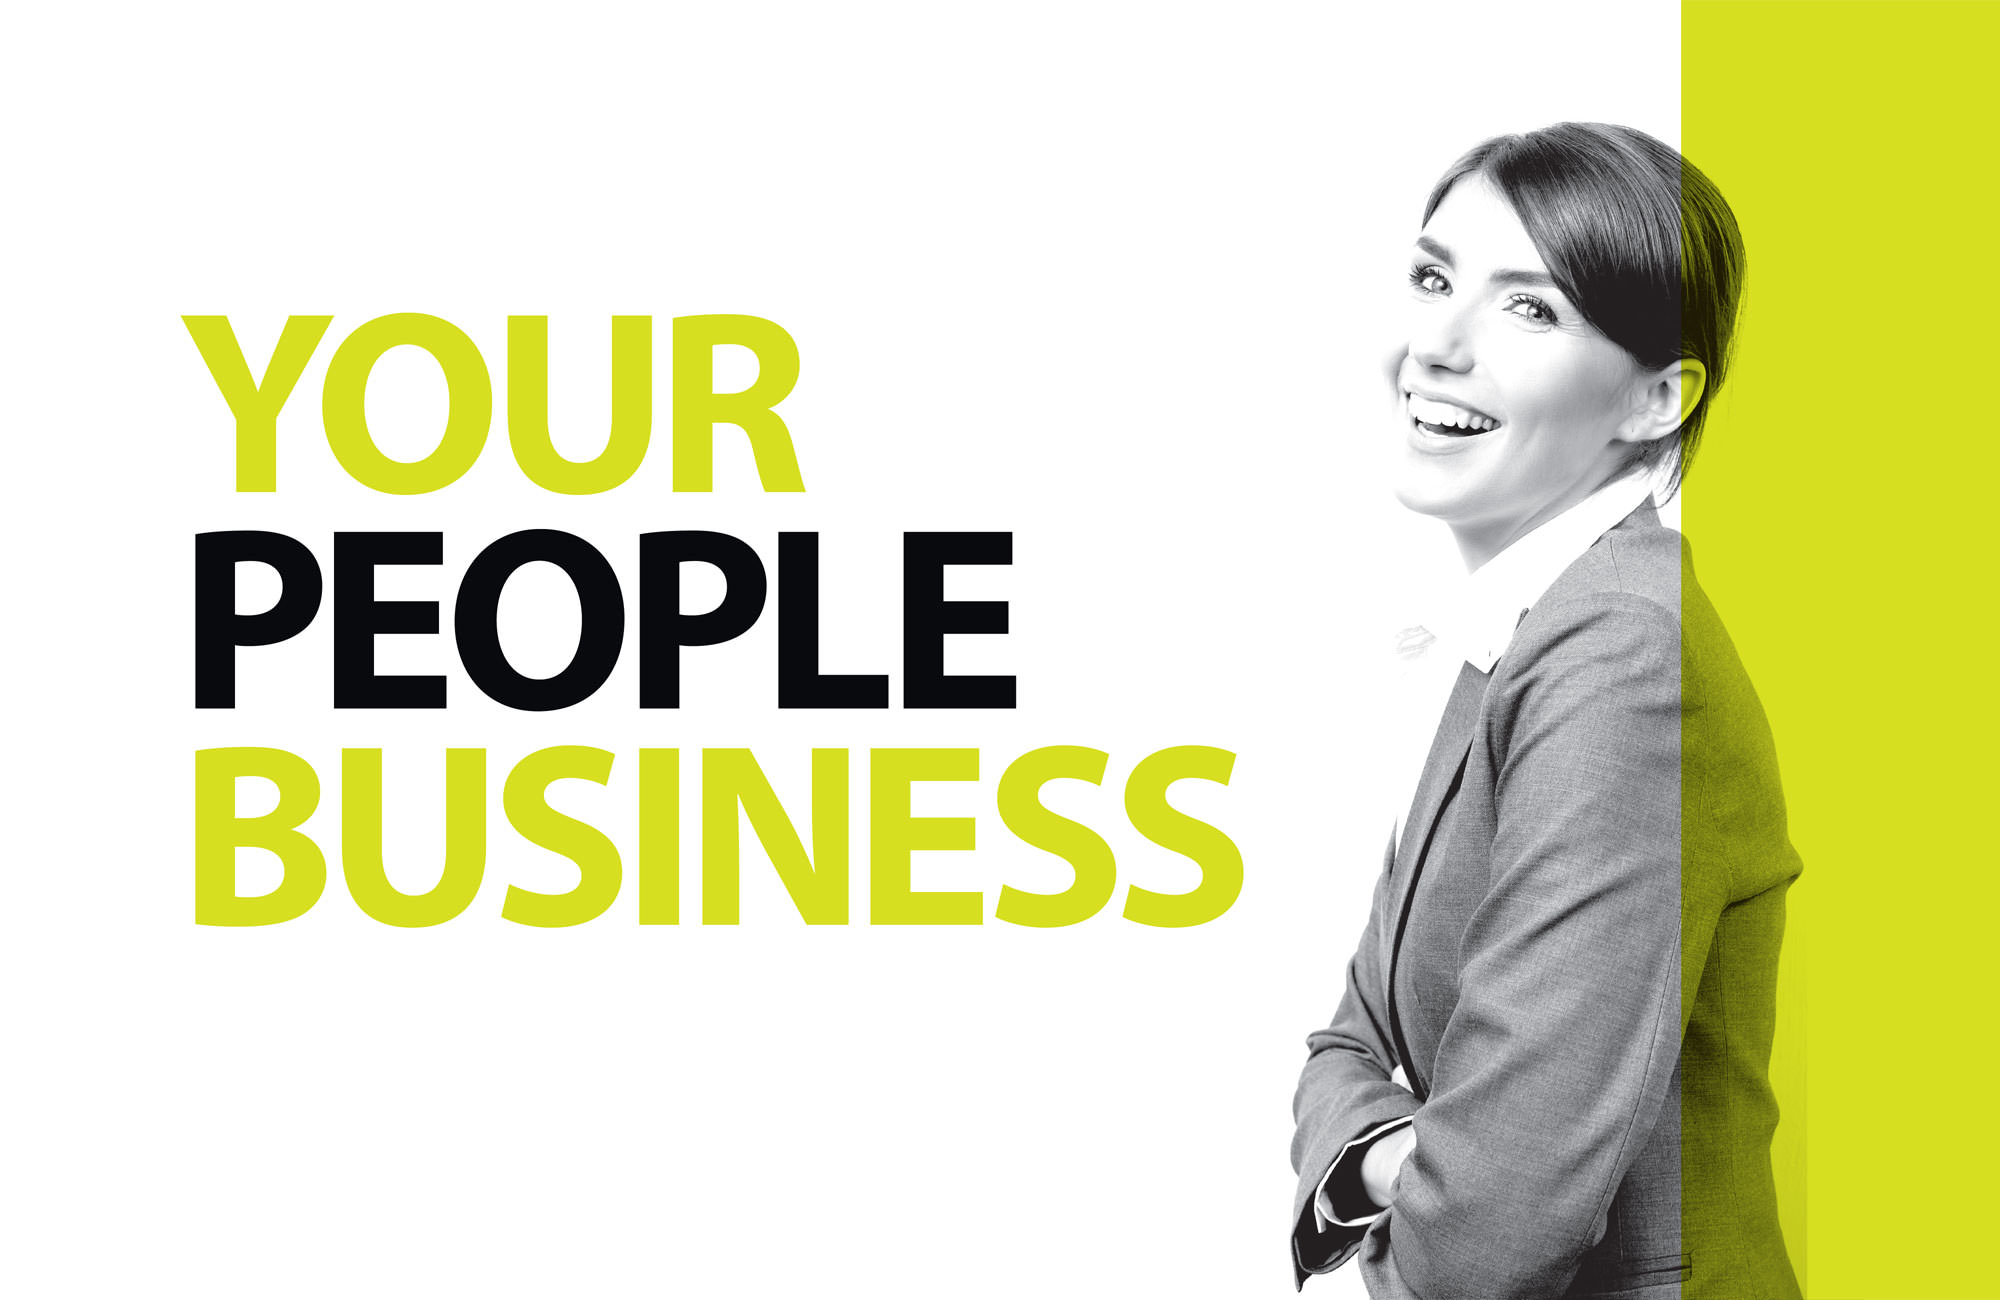 Your People Business